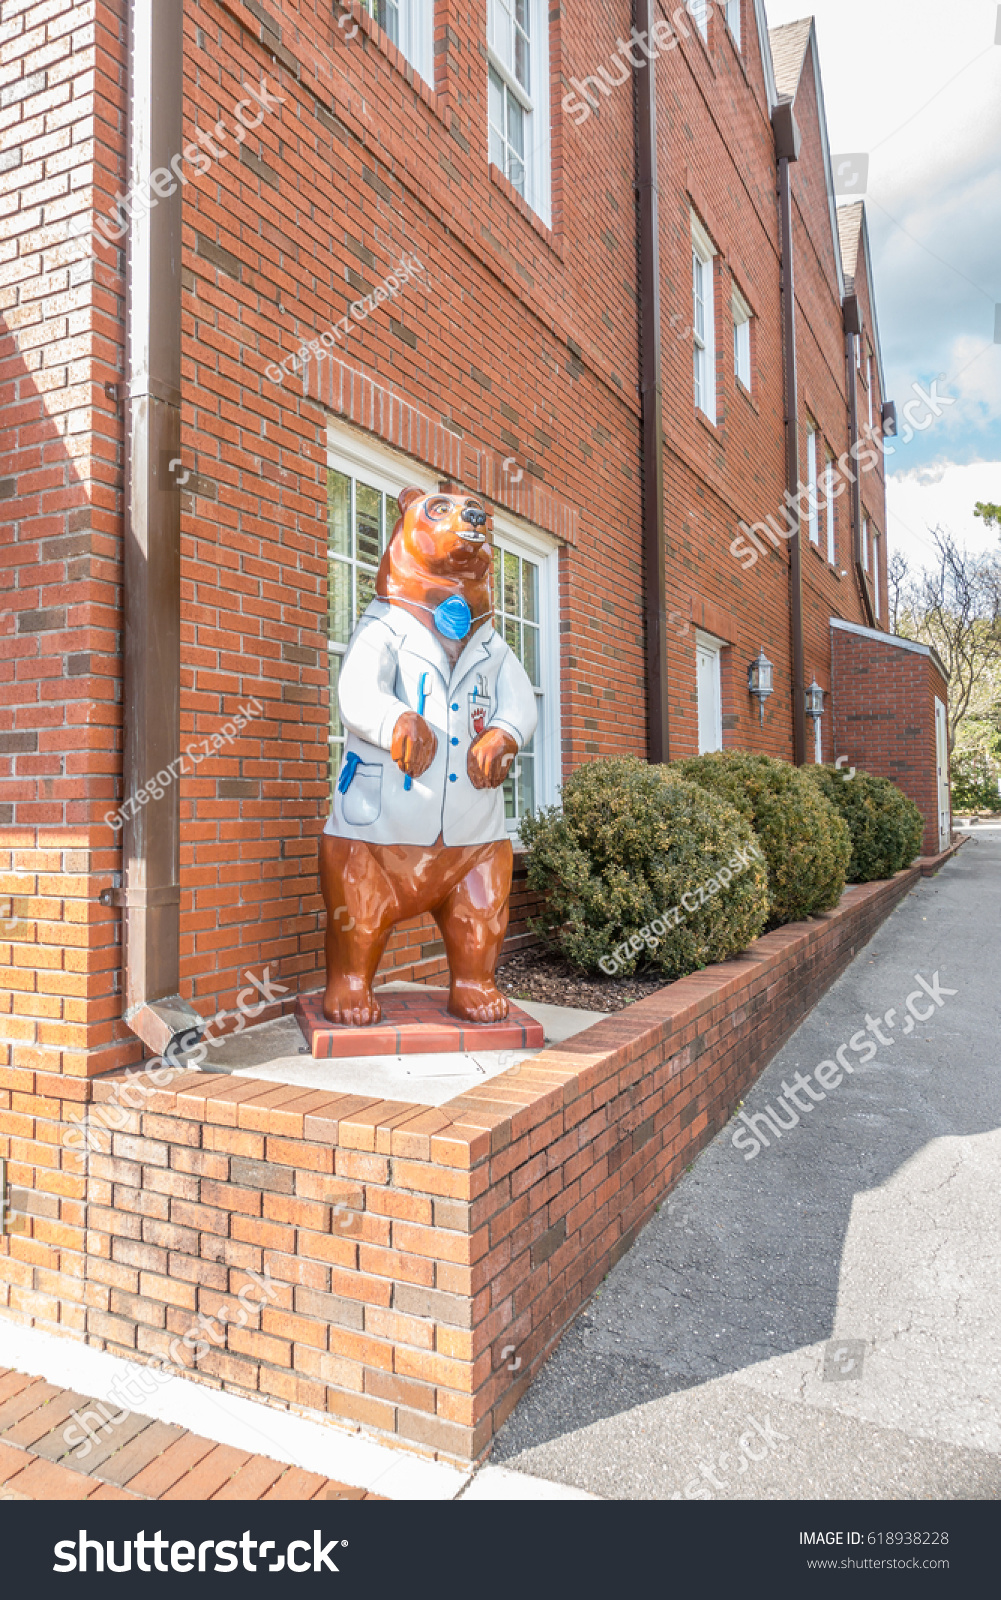 New bern north carolina usa february stock photo 618938228 new bern north carolina usa february 24 2017 bear symbol buycottarizona